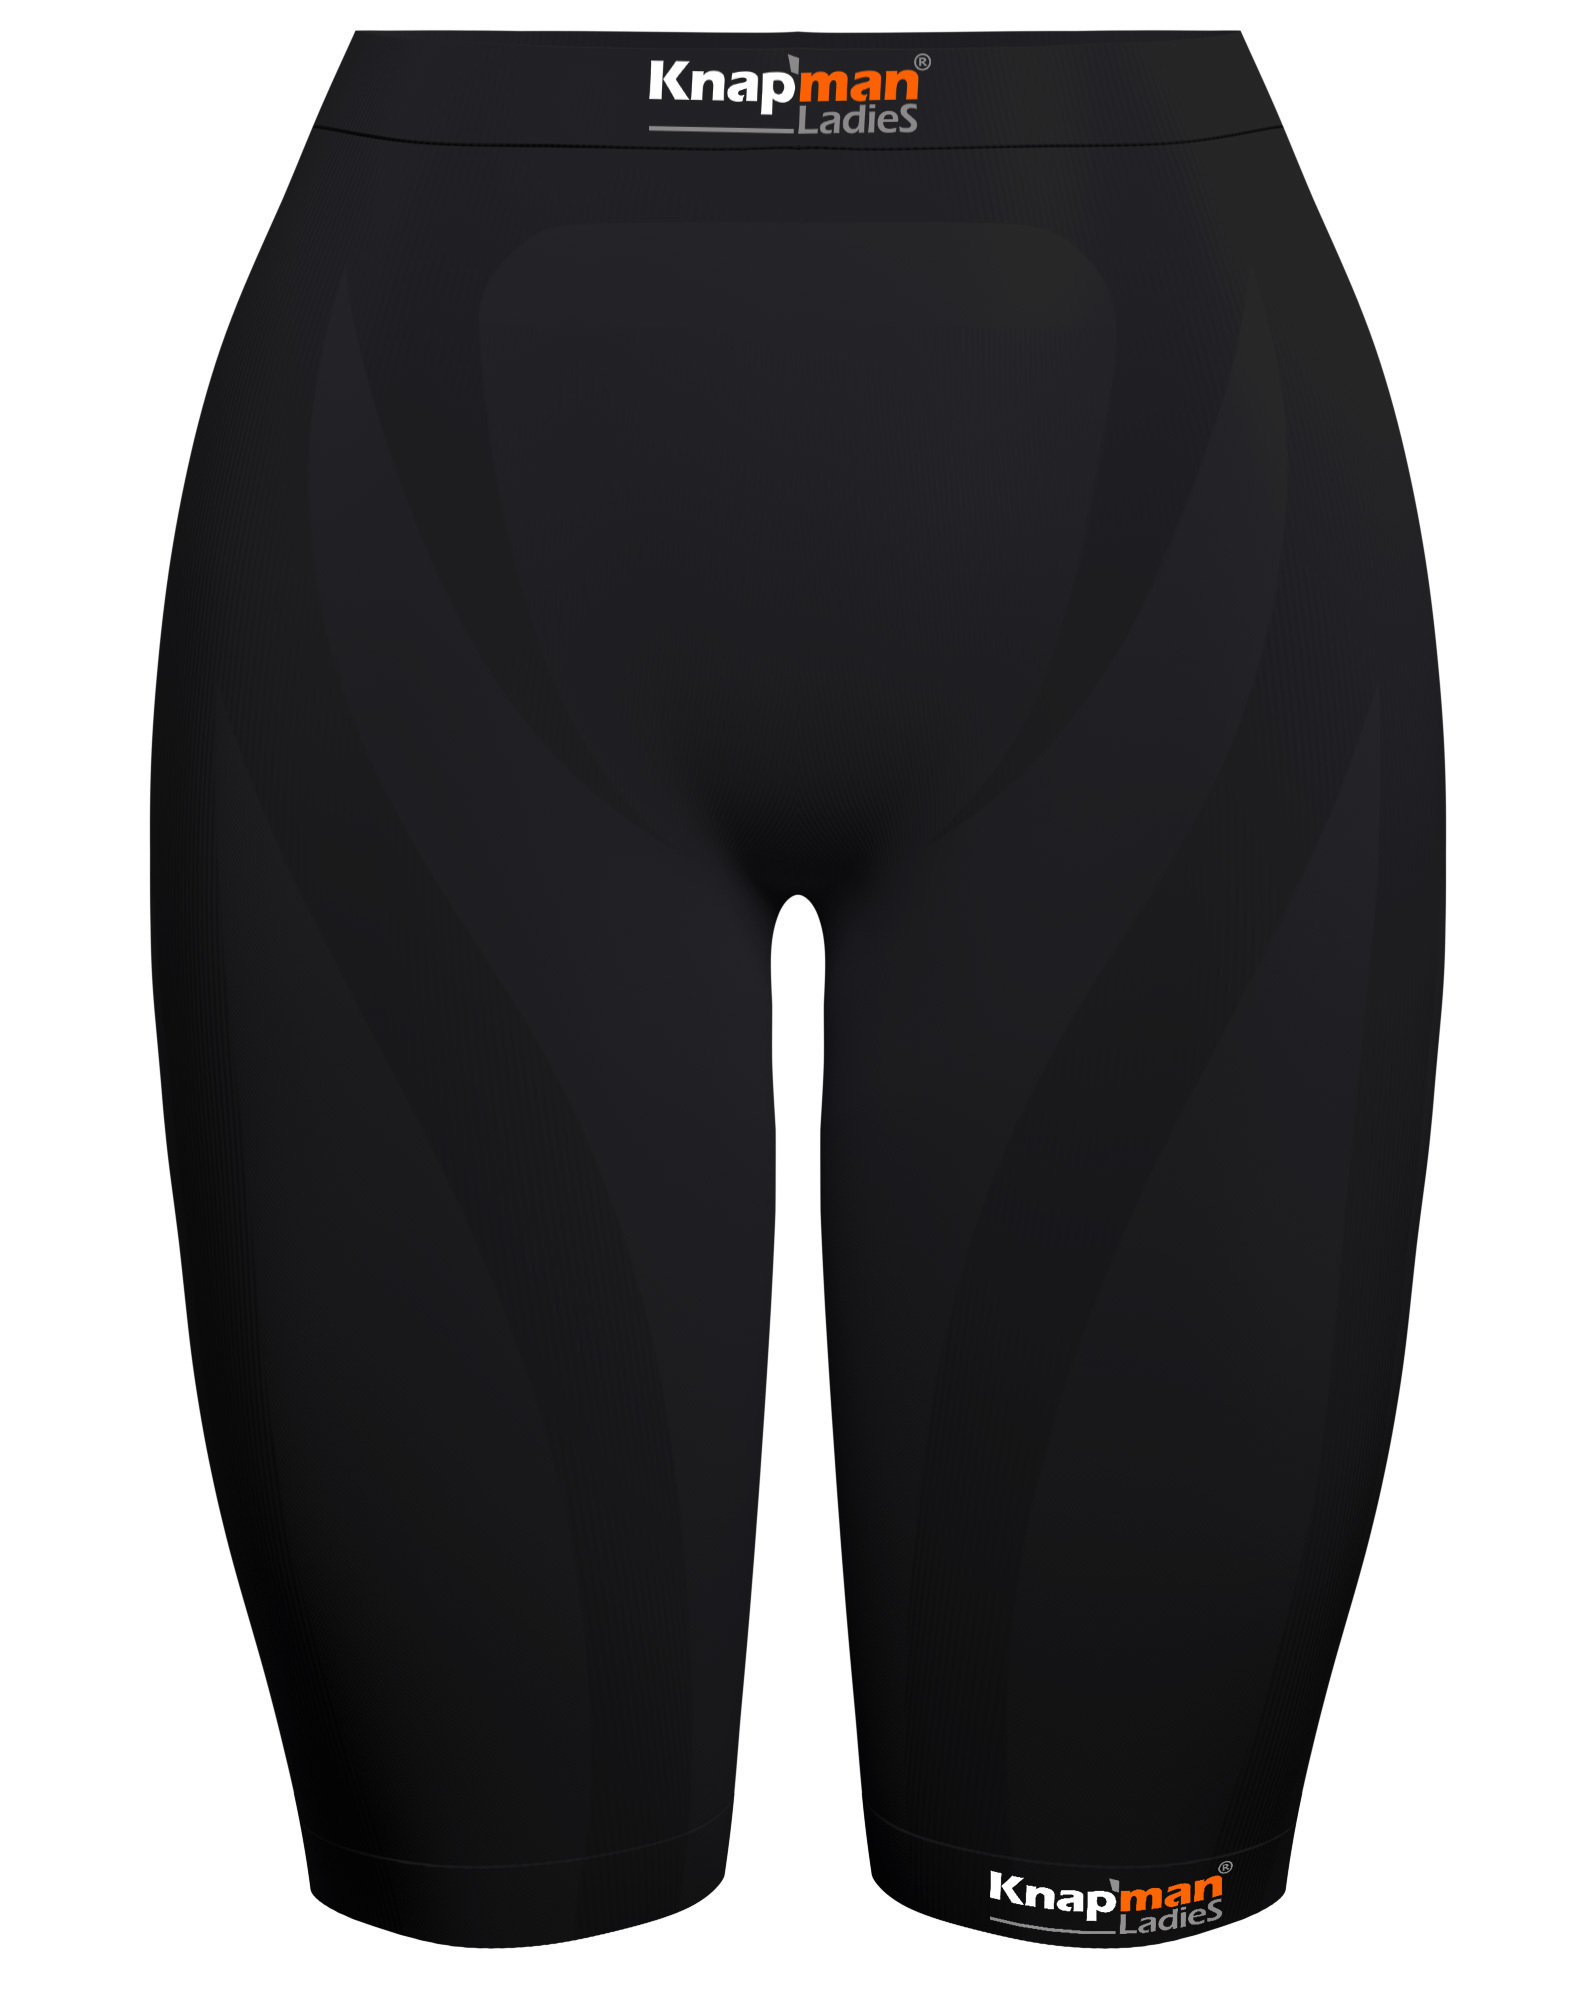 Knap'man Ladies Zoned Compression Short 45% zwart